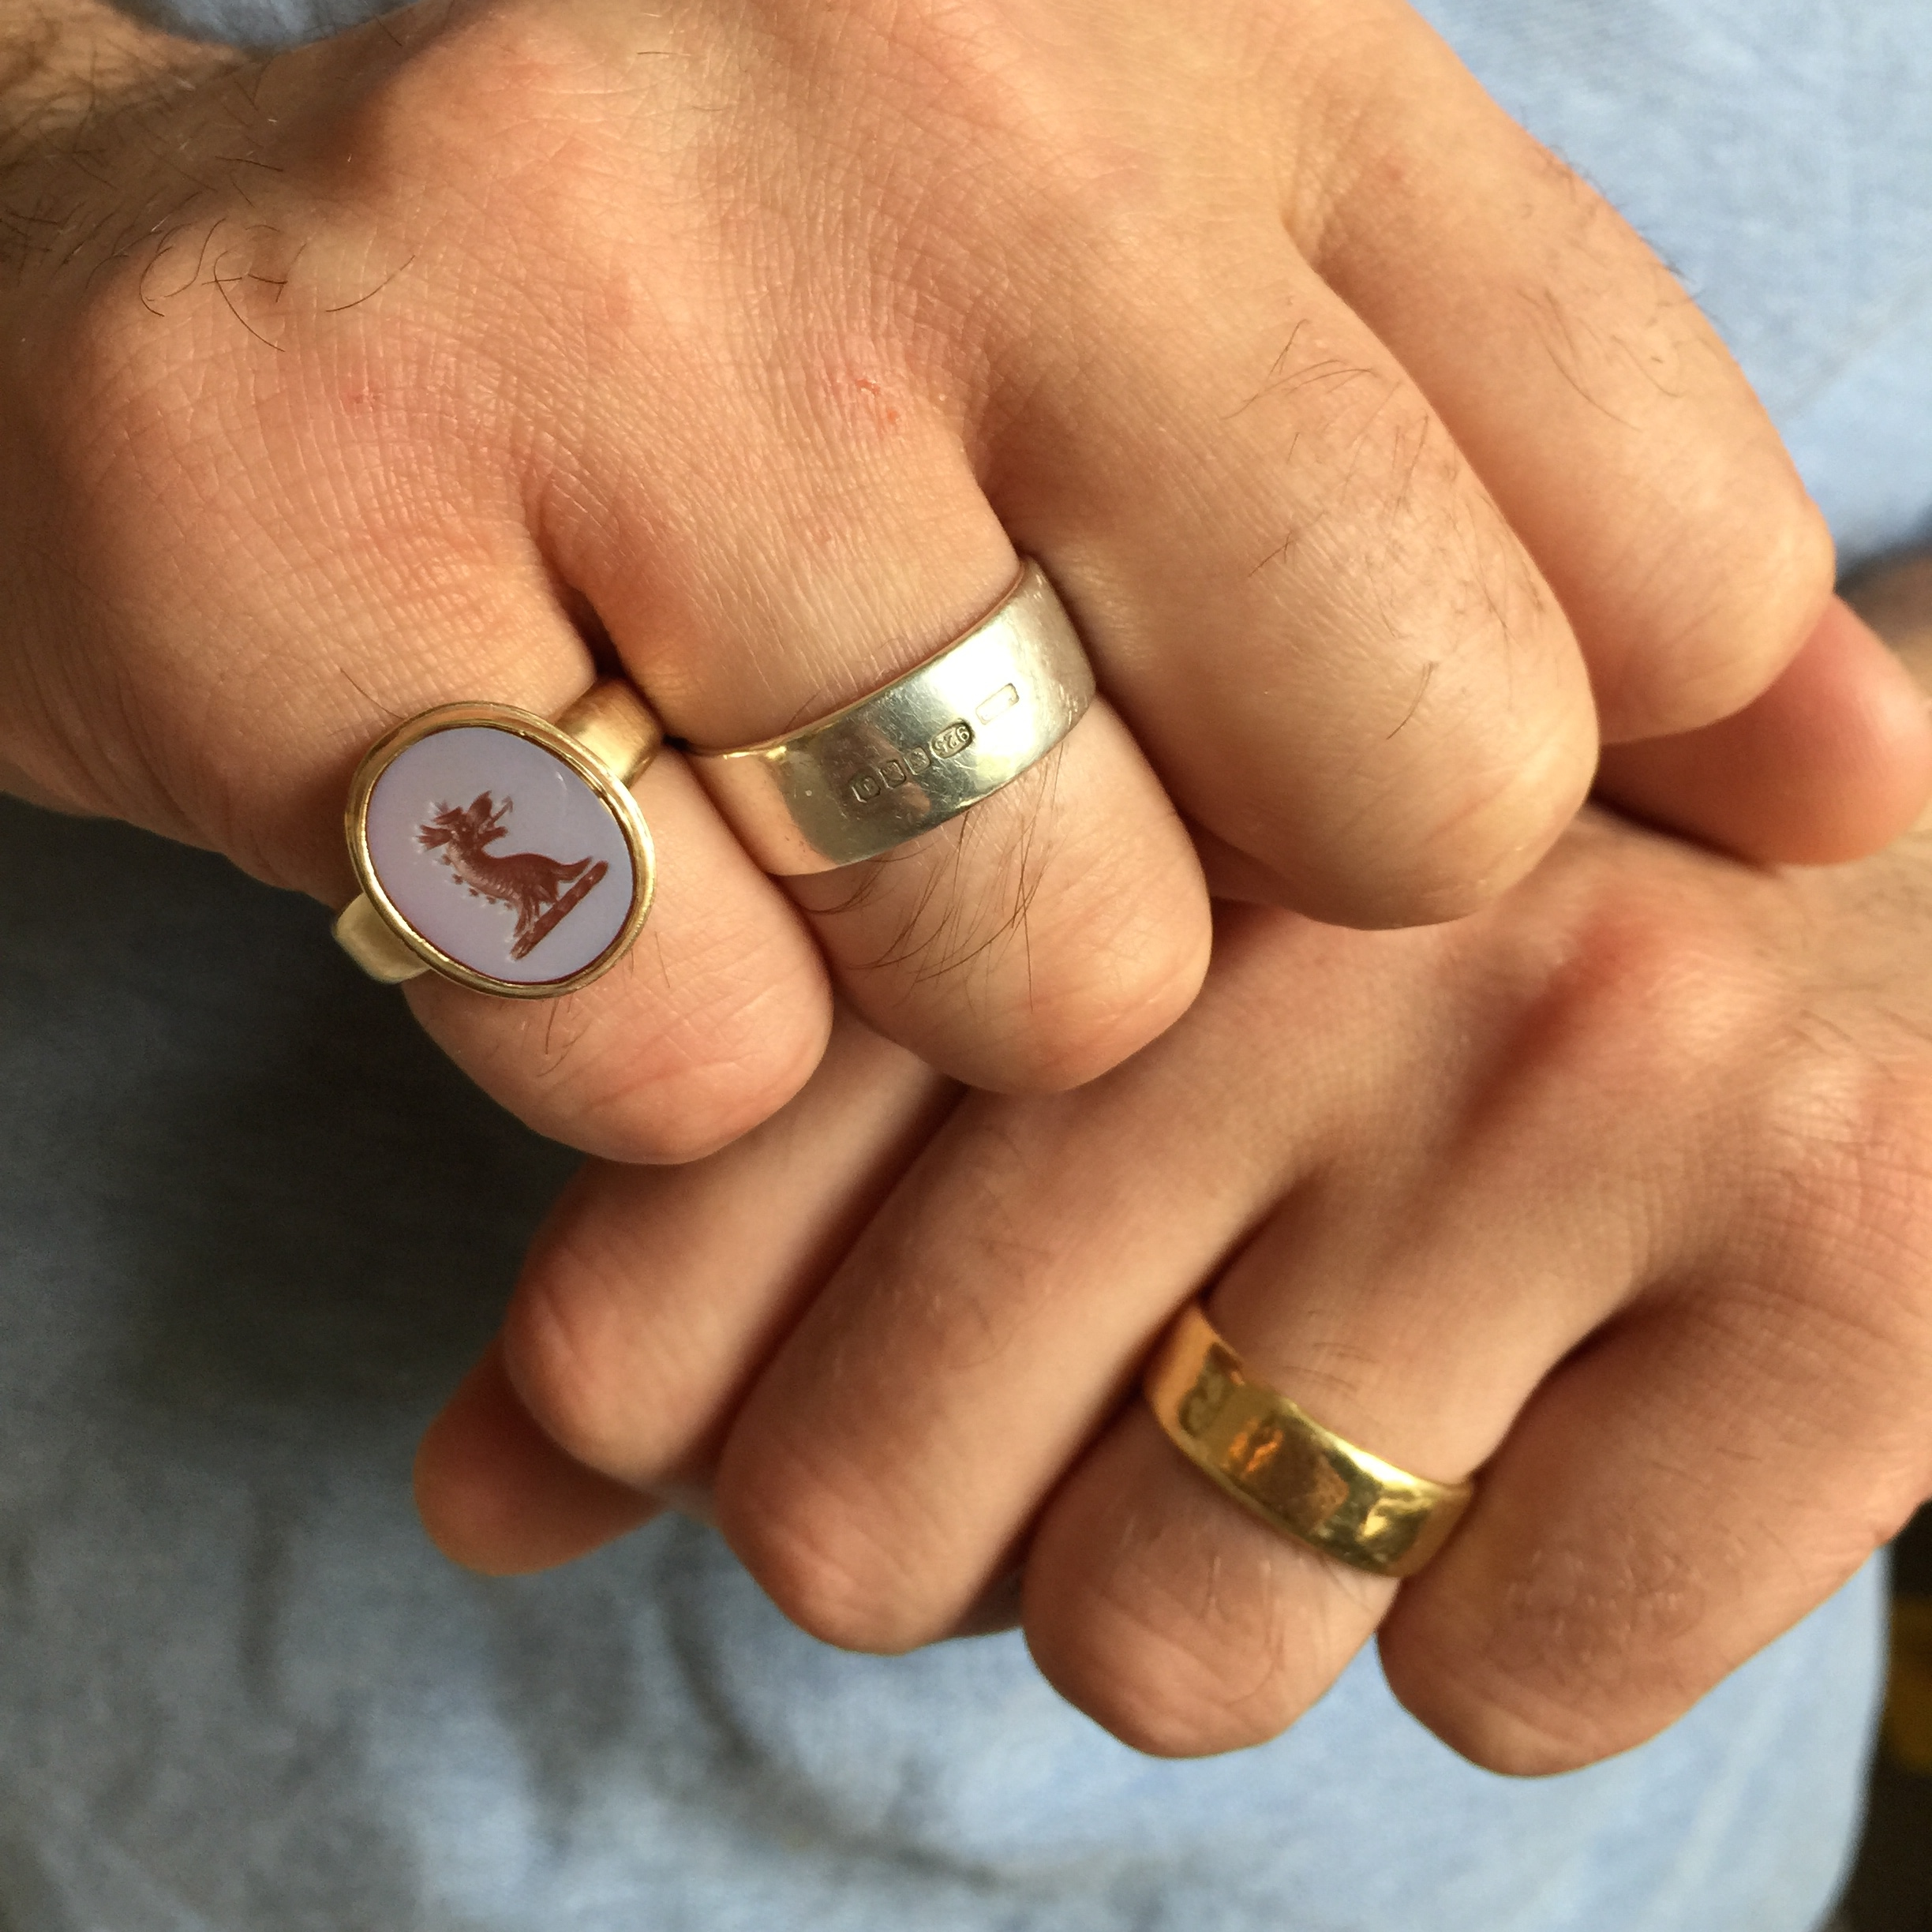 My husband's rings, with his new addition! I also made the other two...his 18ct yellow gold wedding band from 2012, and the silver band with feature hallmark was a gift for our 2nd year dating anniversary in 2004.